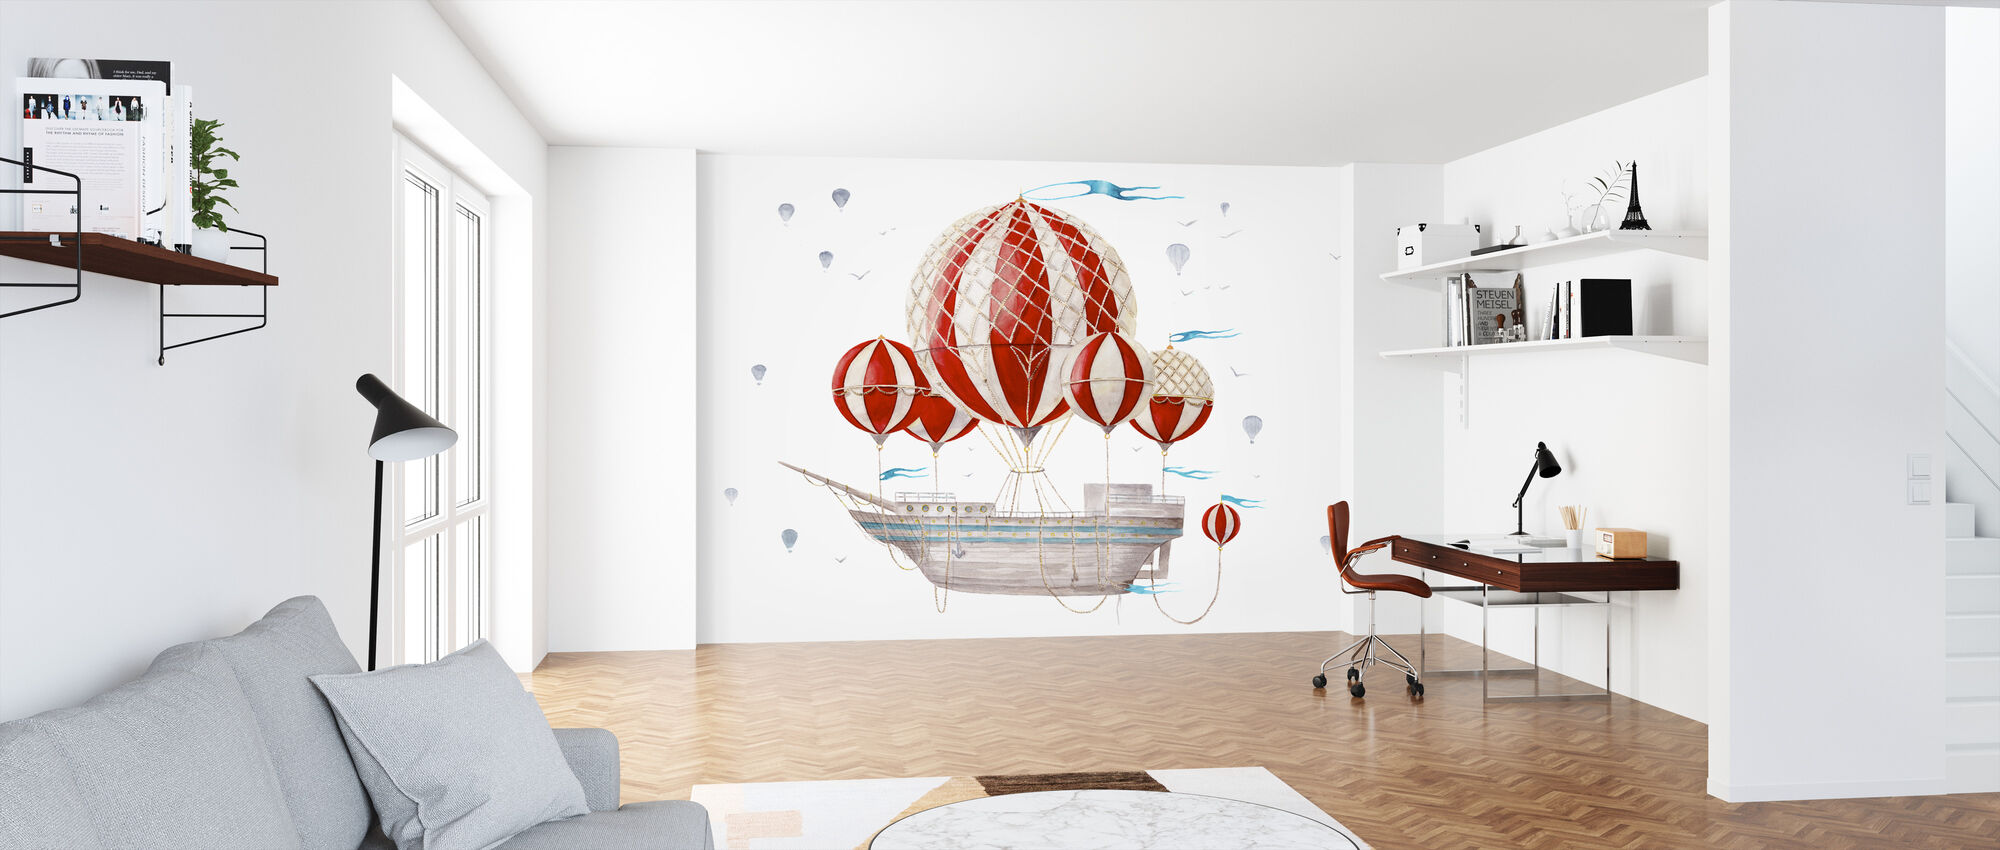 Ship Comes Loaded - Wallpaper - Office